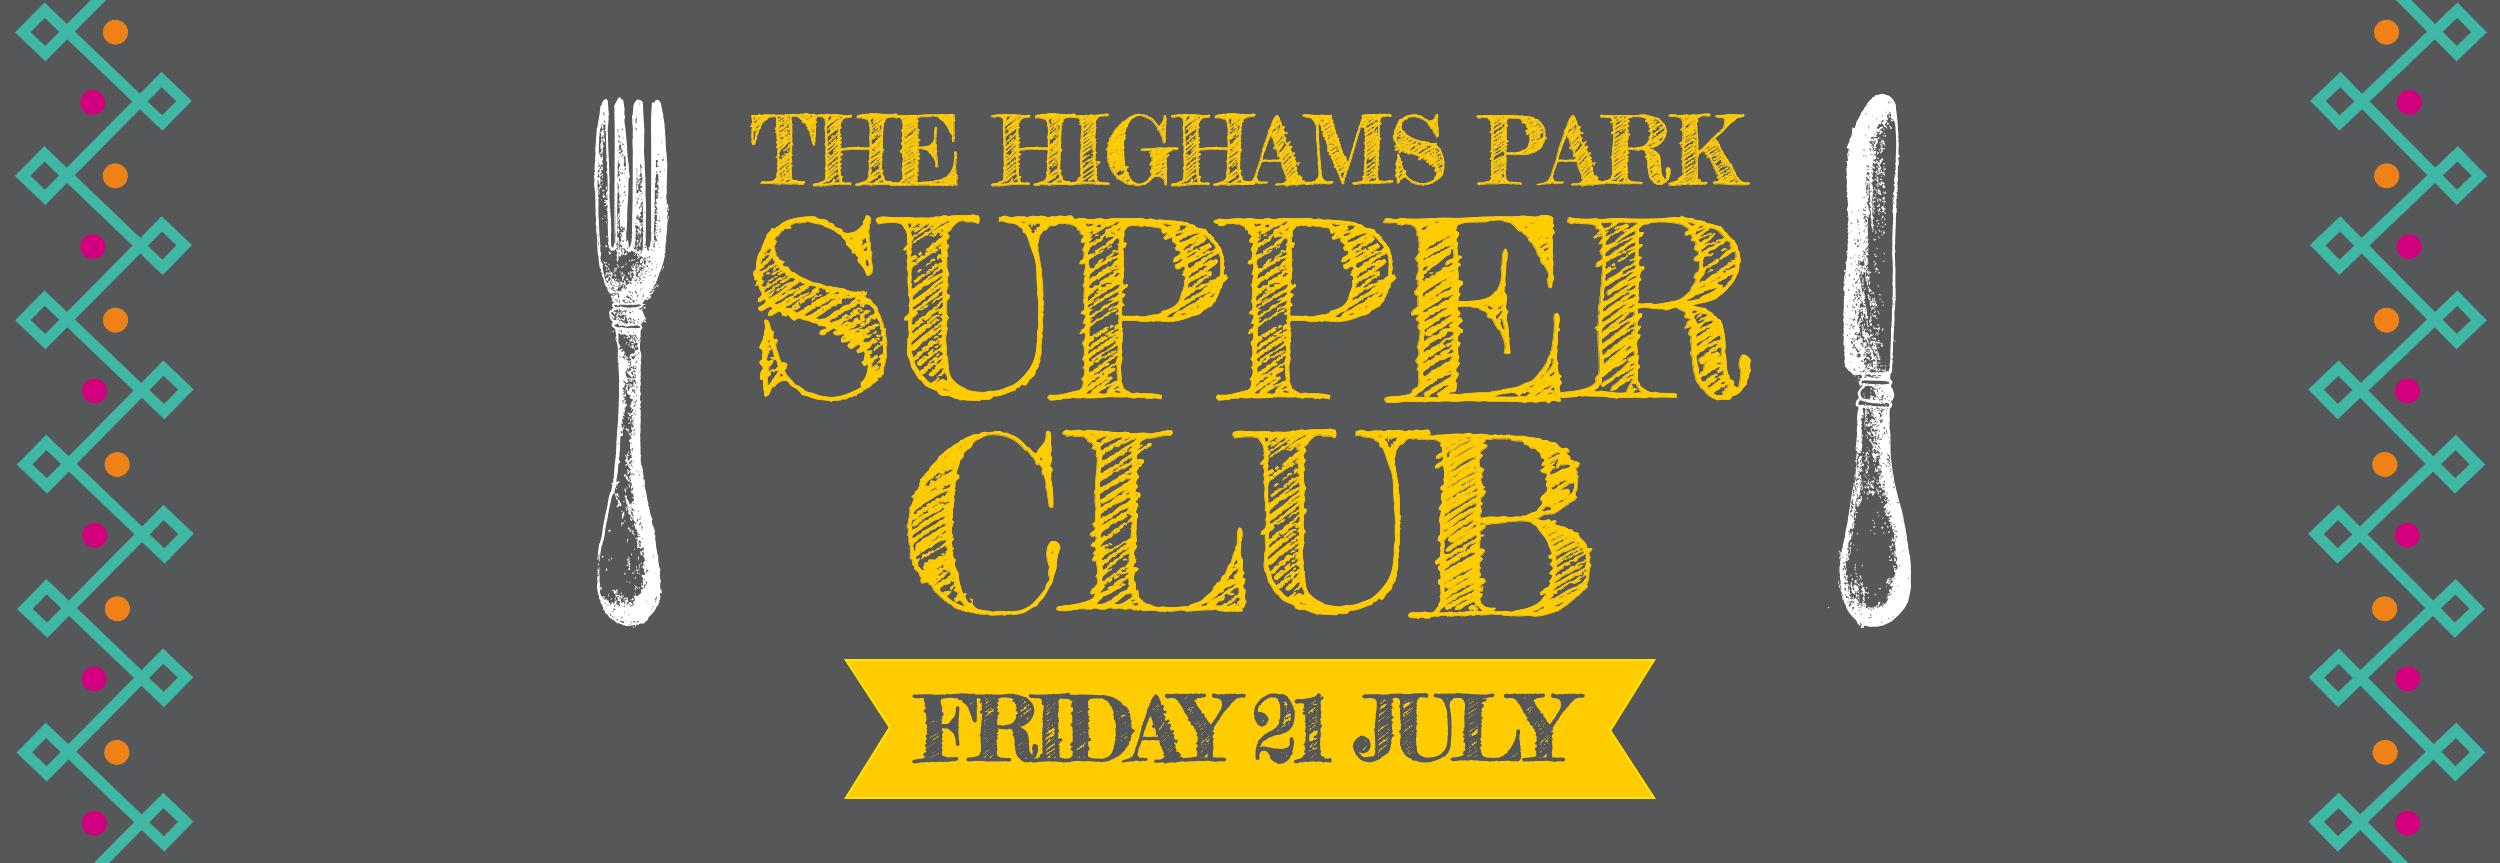 The Highams Park Supper Club